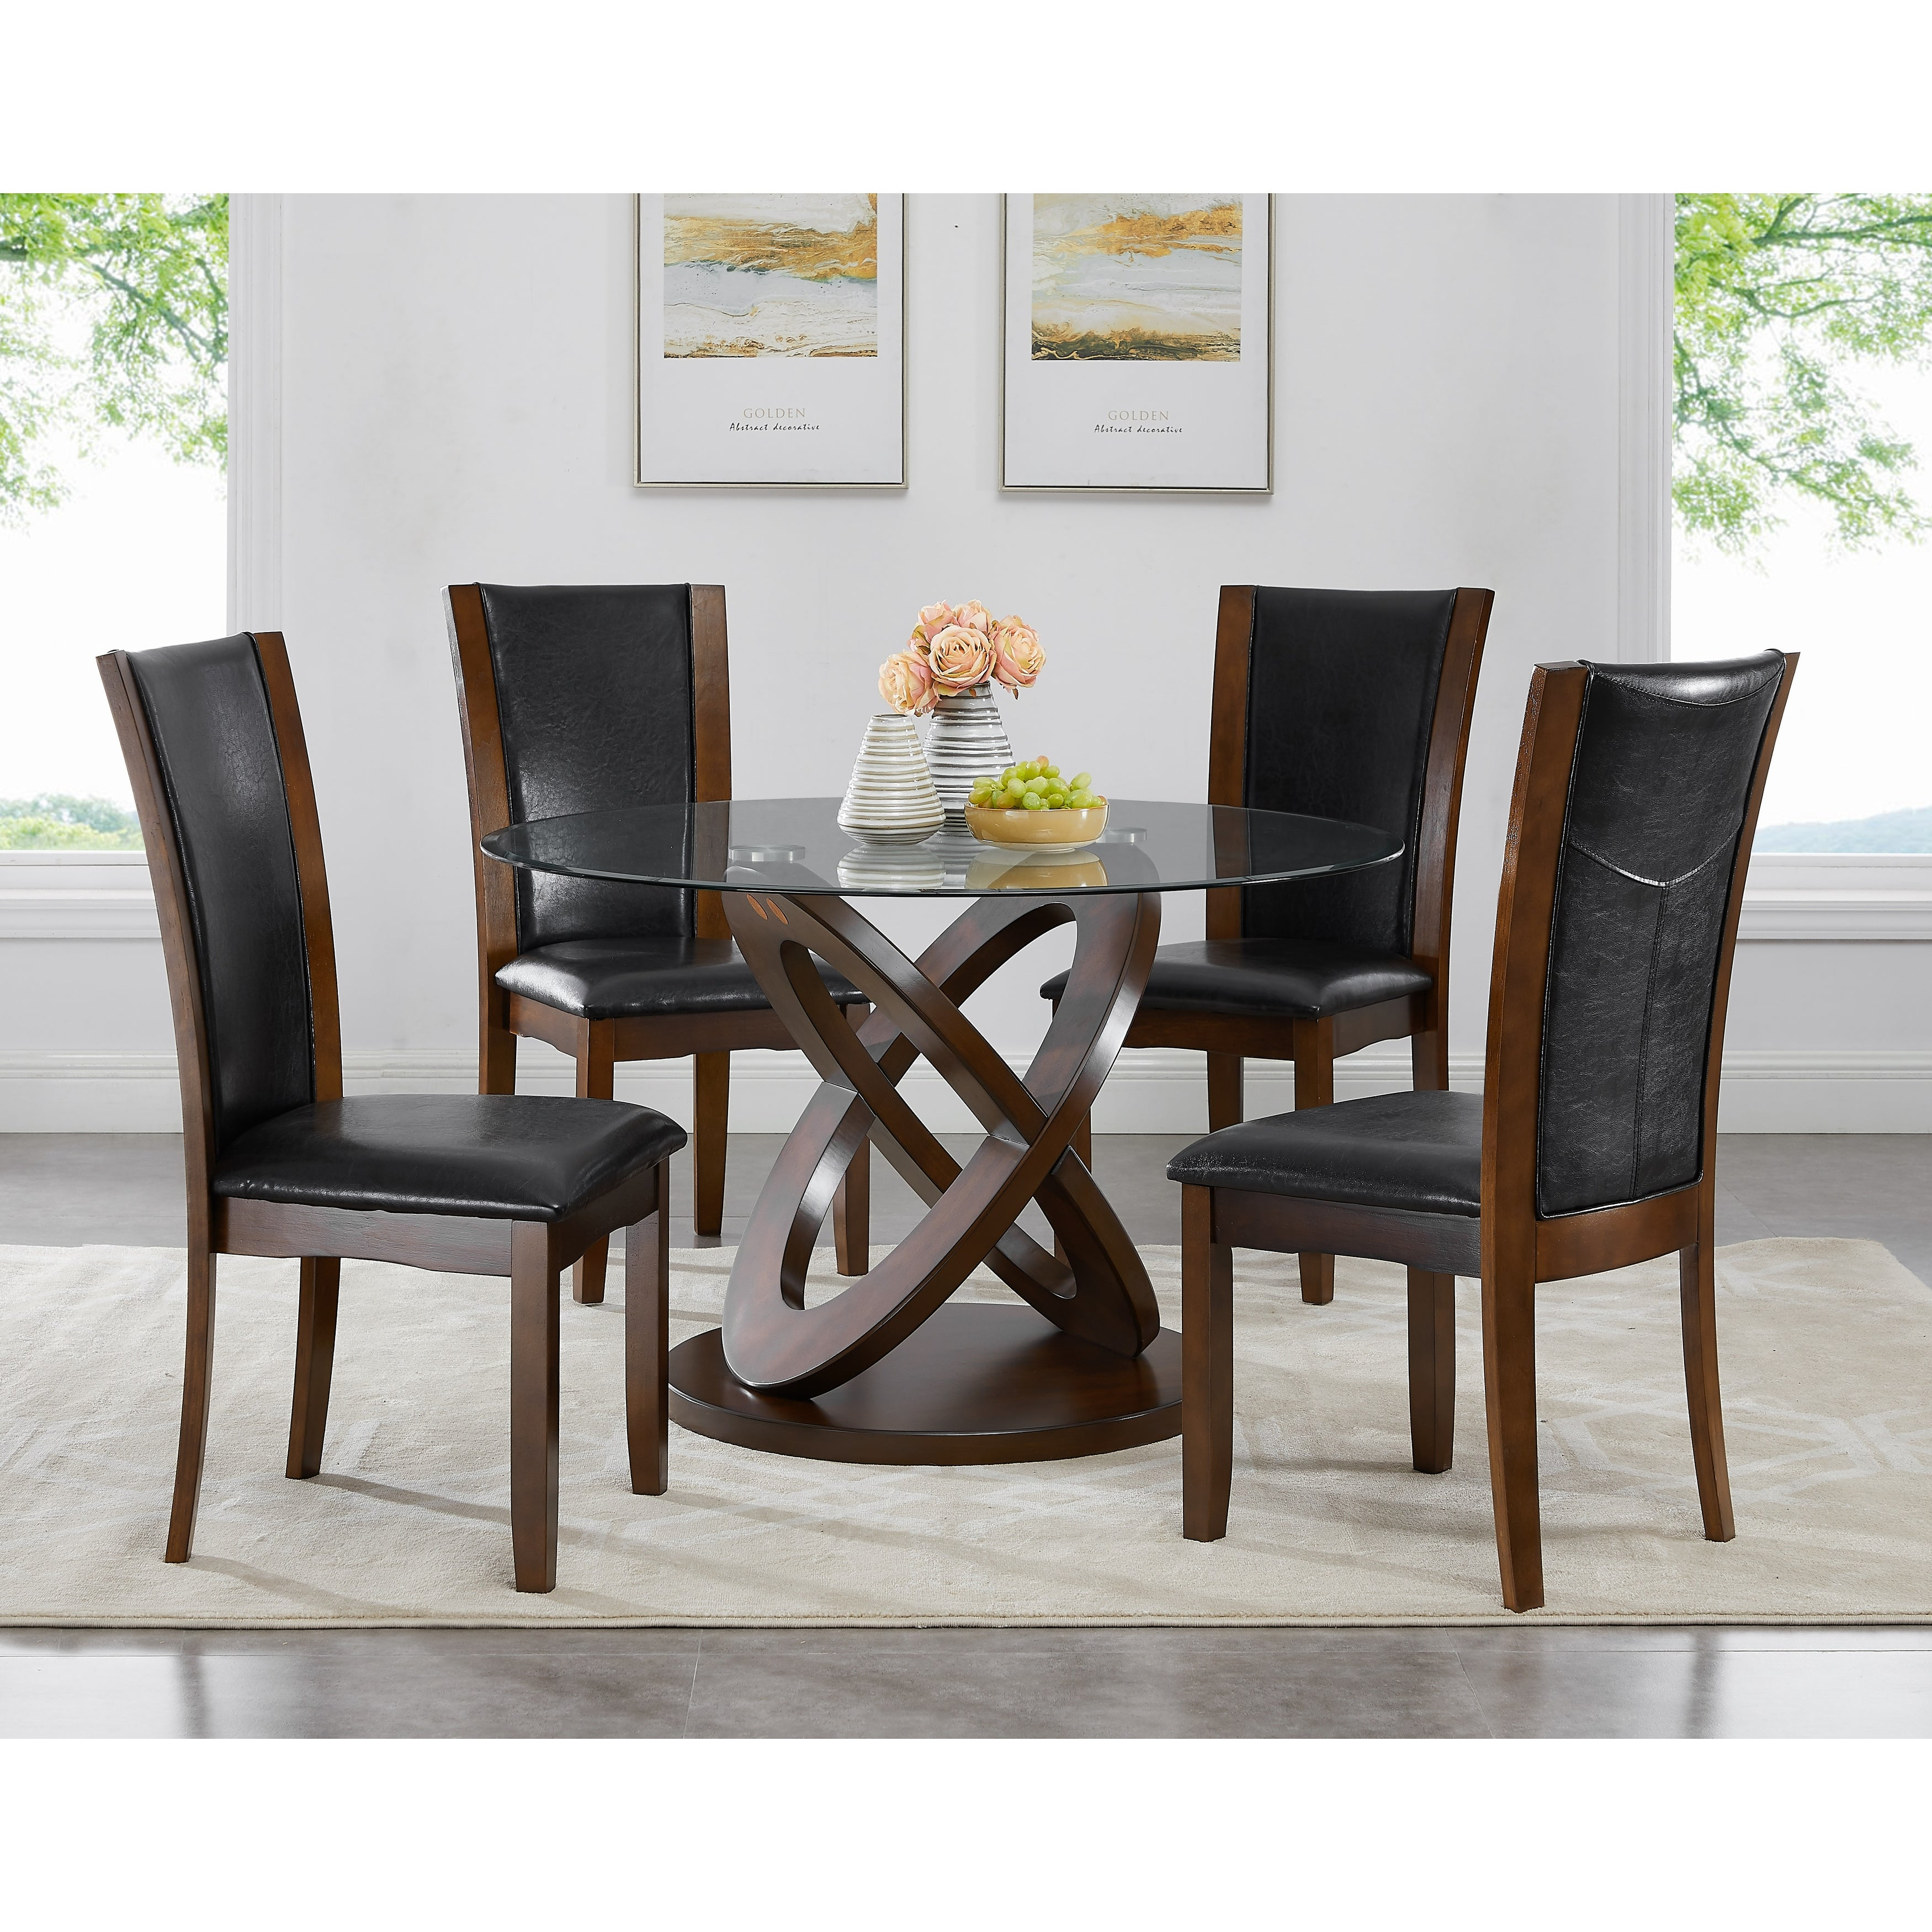 Cicicol 5 Piece Glass Top Dining Table With Chairs Overstock 14458173